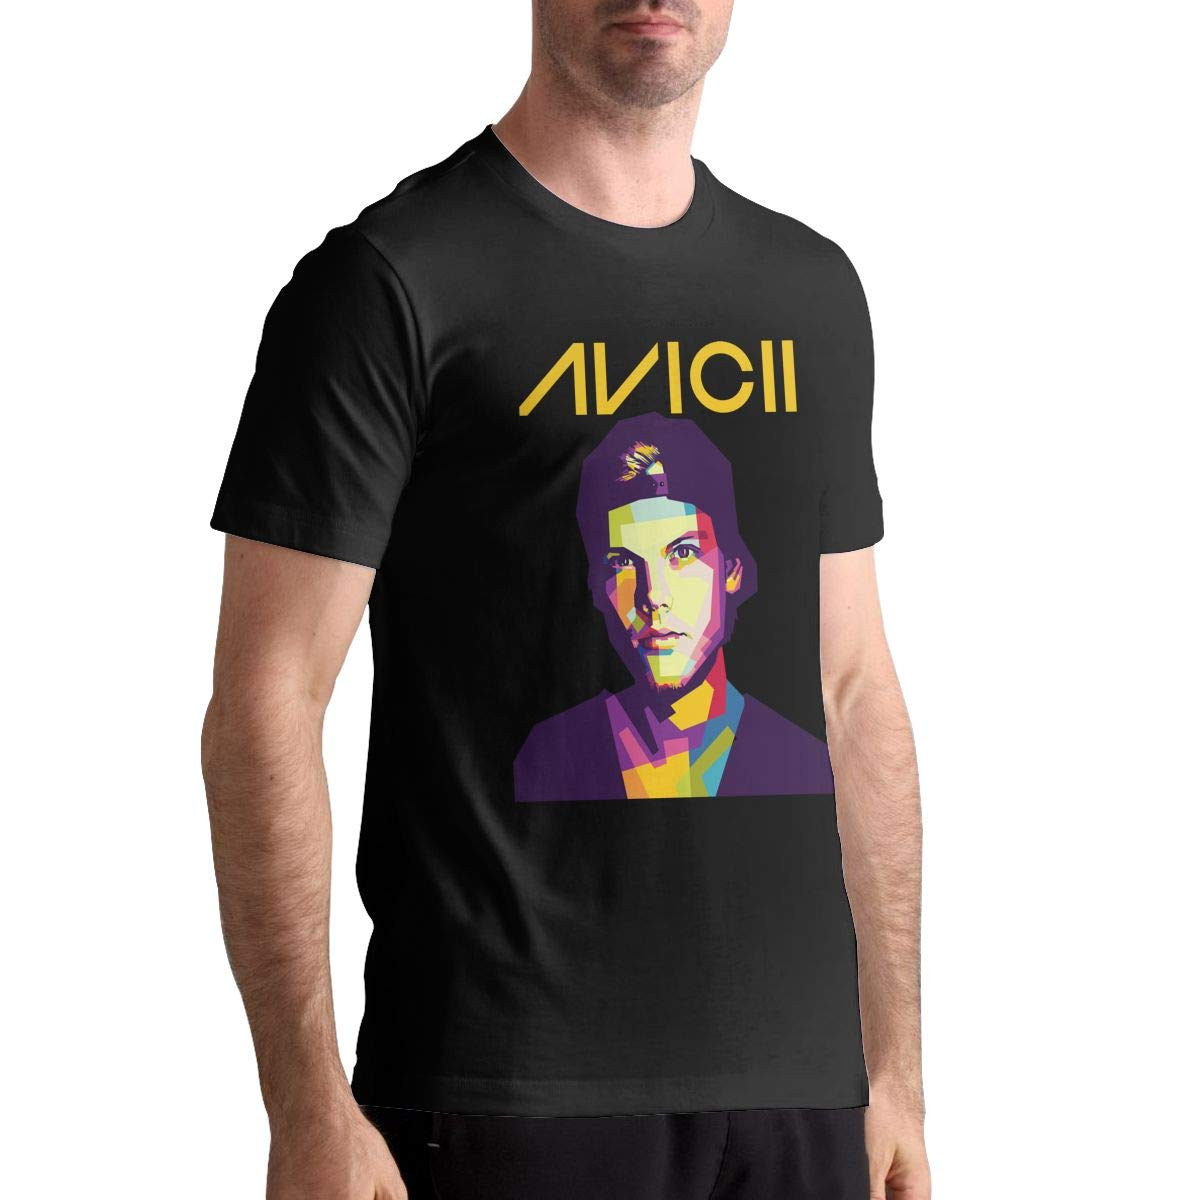 Denise K Steinbach Avicii T Shirt Mens Cotton Fashion Sports Casual Round Neck Short Sleeve Tees